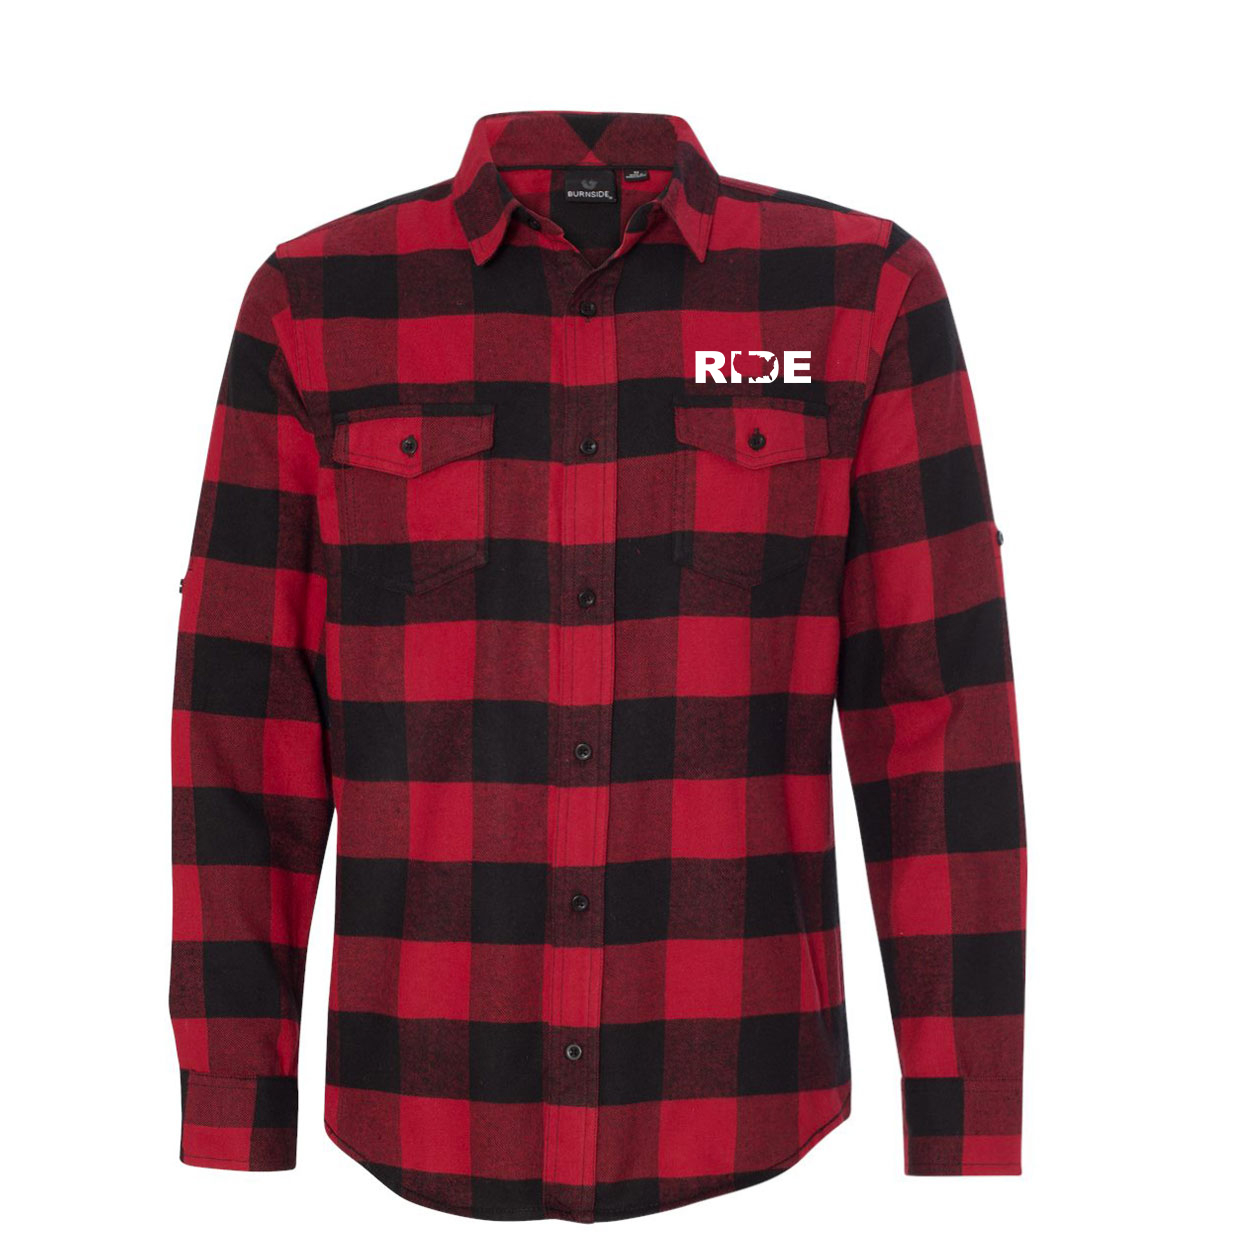 Ride United States Classic Unisex Long Sleeve Flannel Shirt Red/Black Buffalo (White Logo)